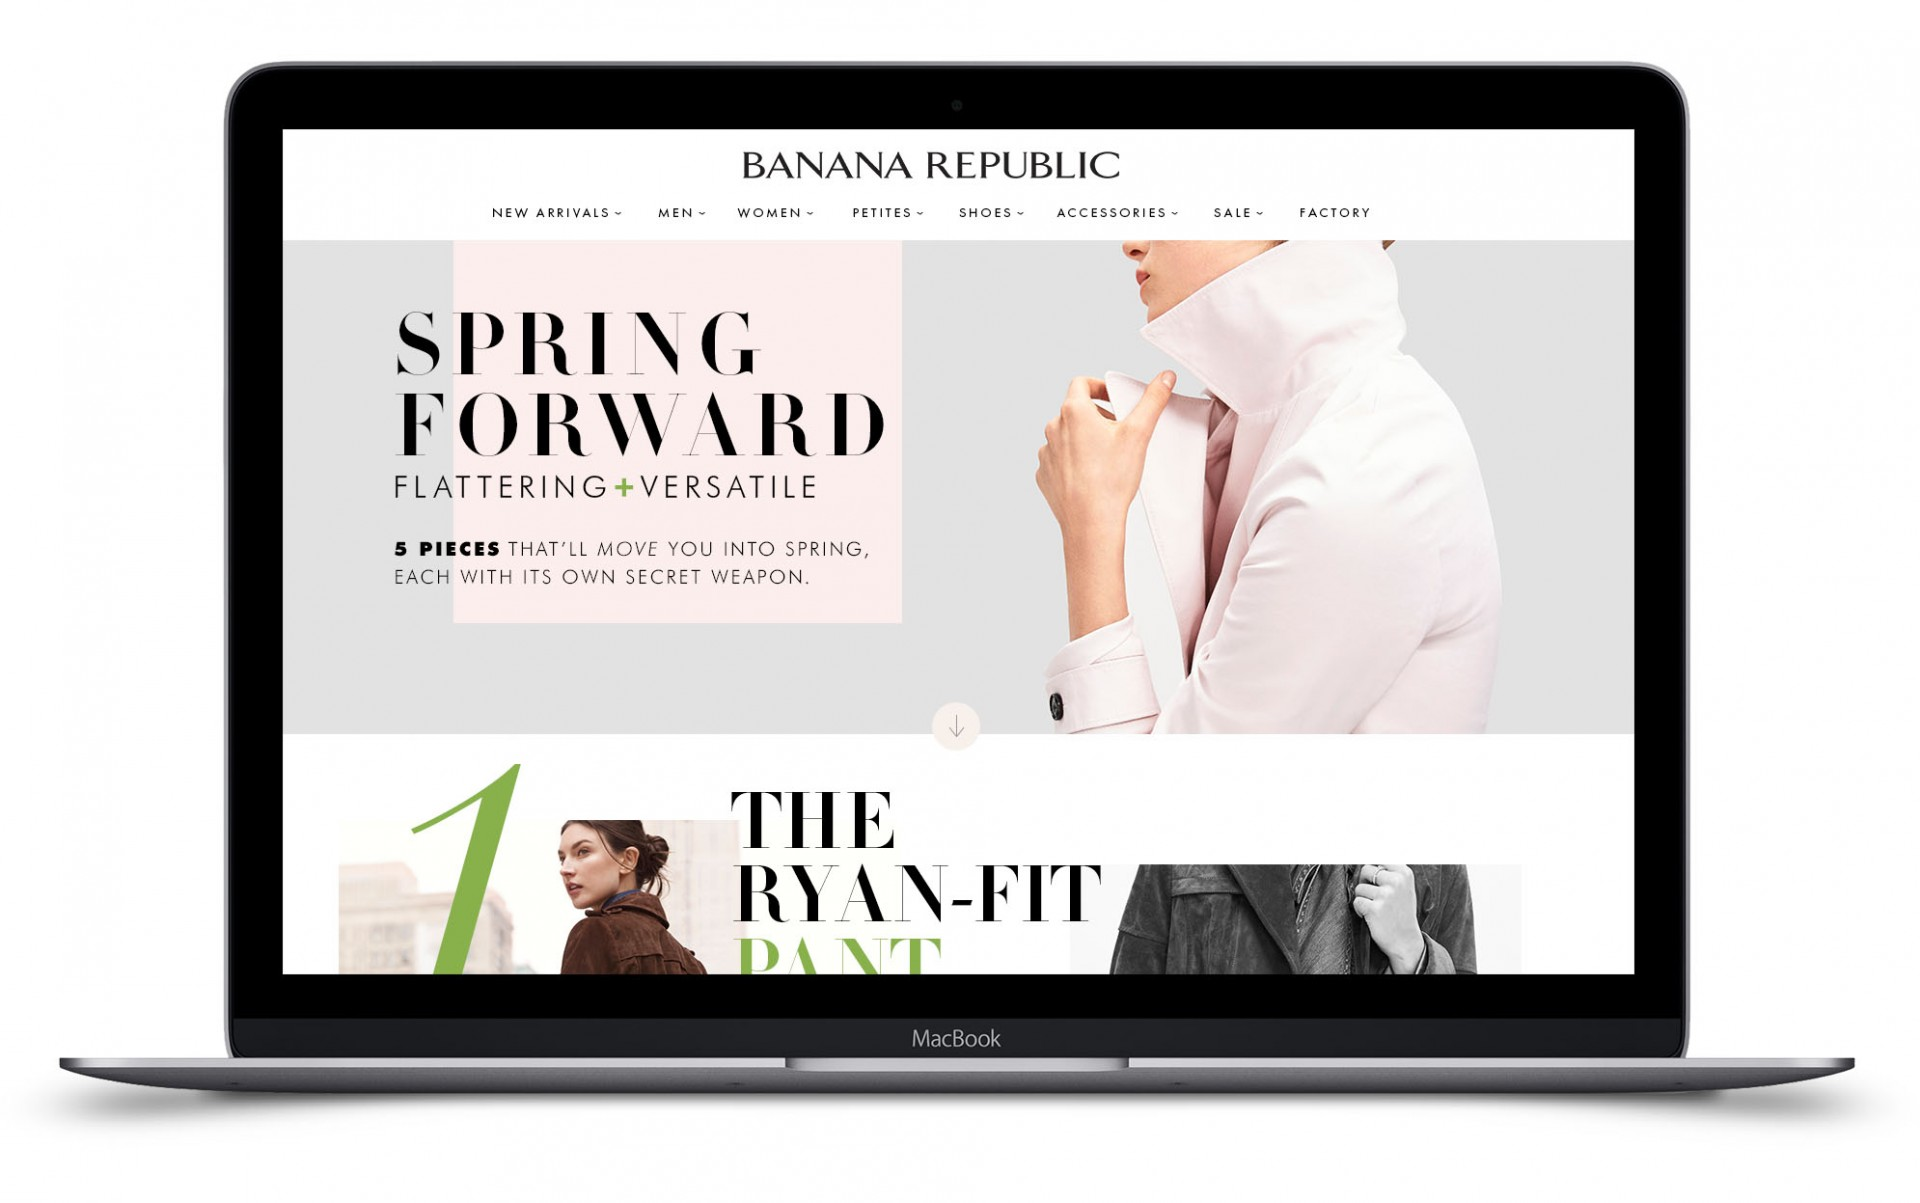 ALEXANDER ABRIAM — DIGITAL EDITORIAL:<br>SPRING FORWARD